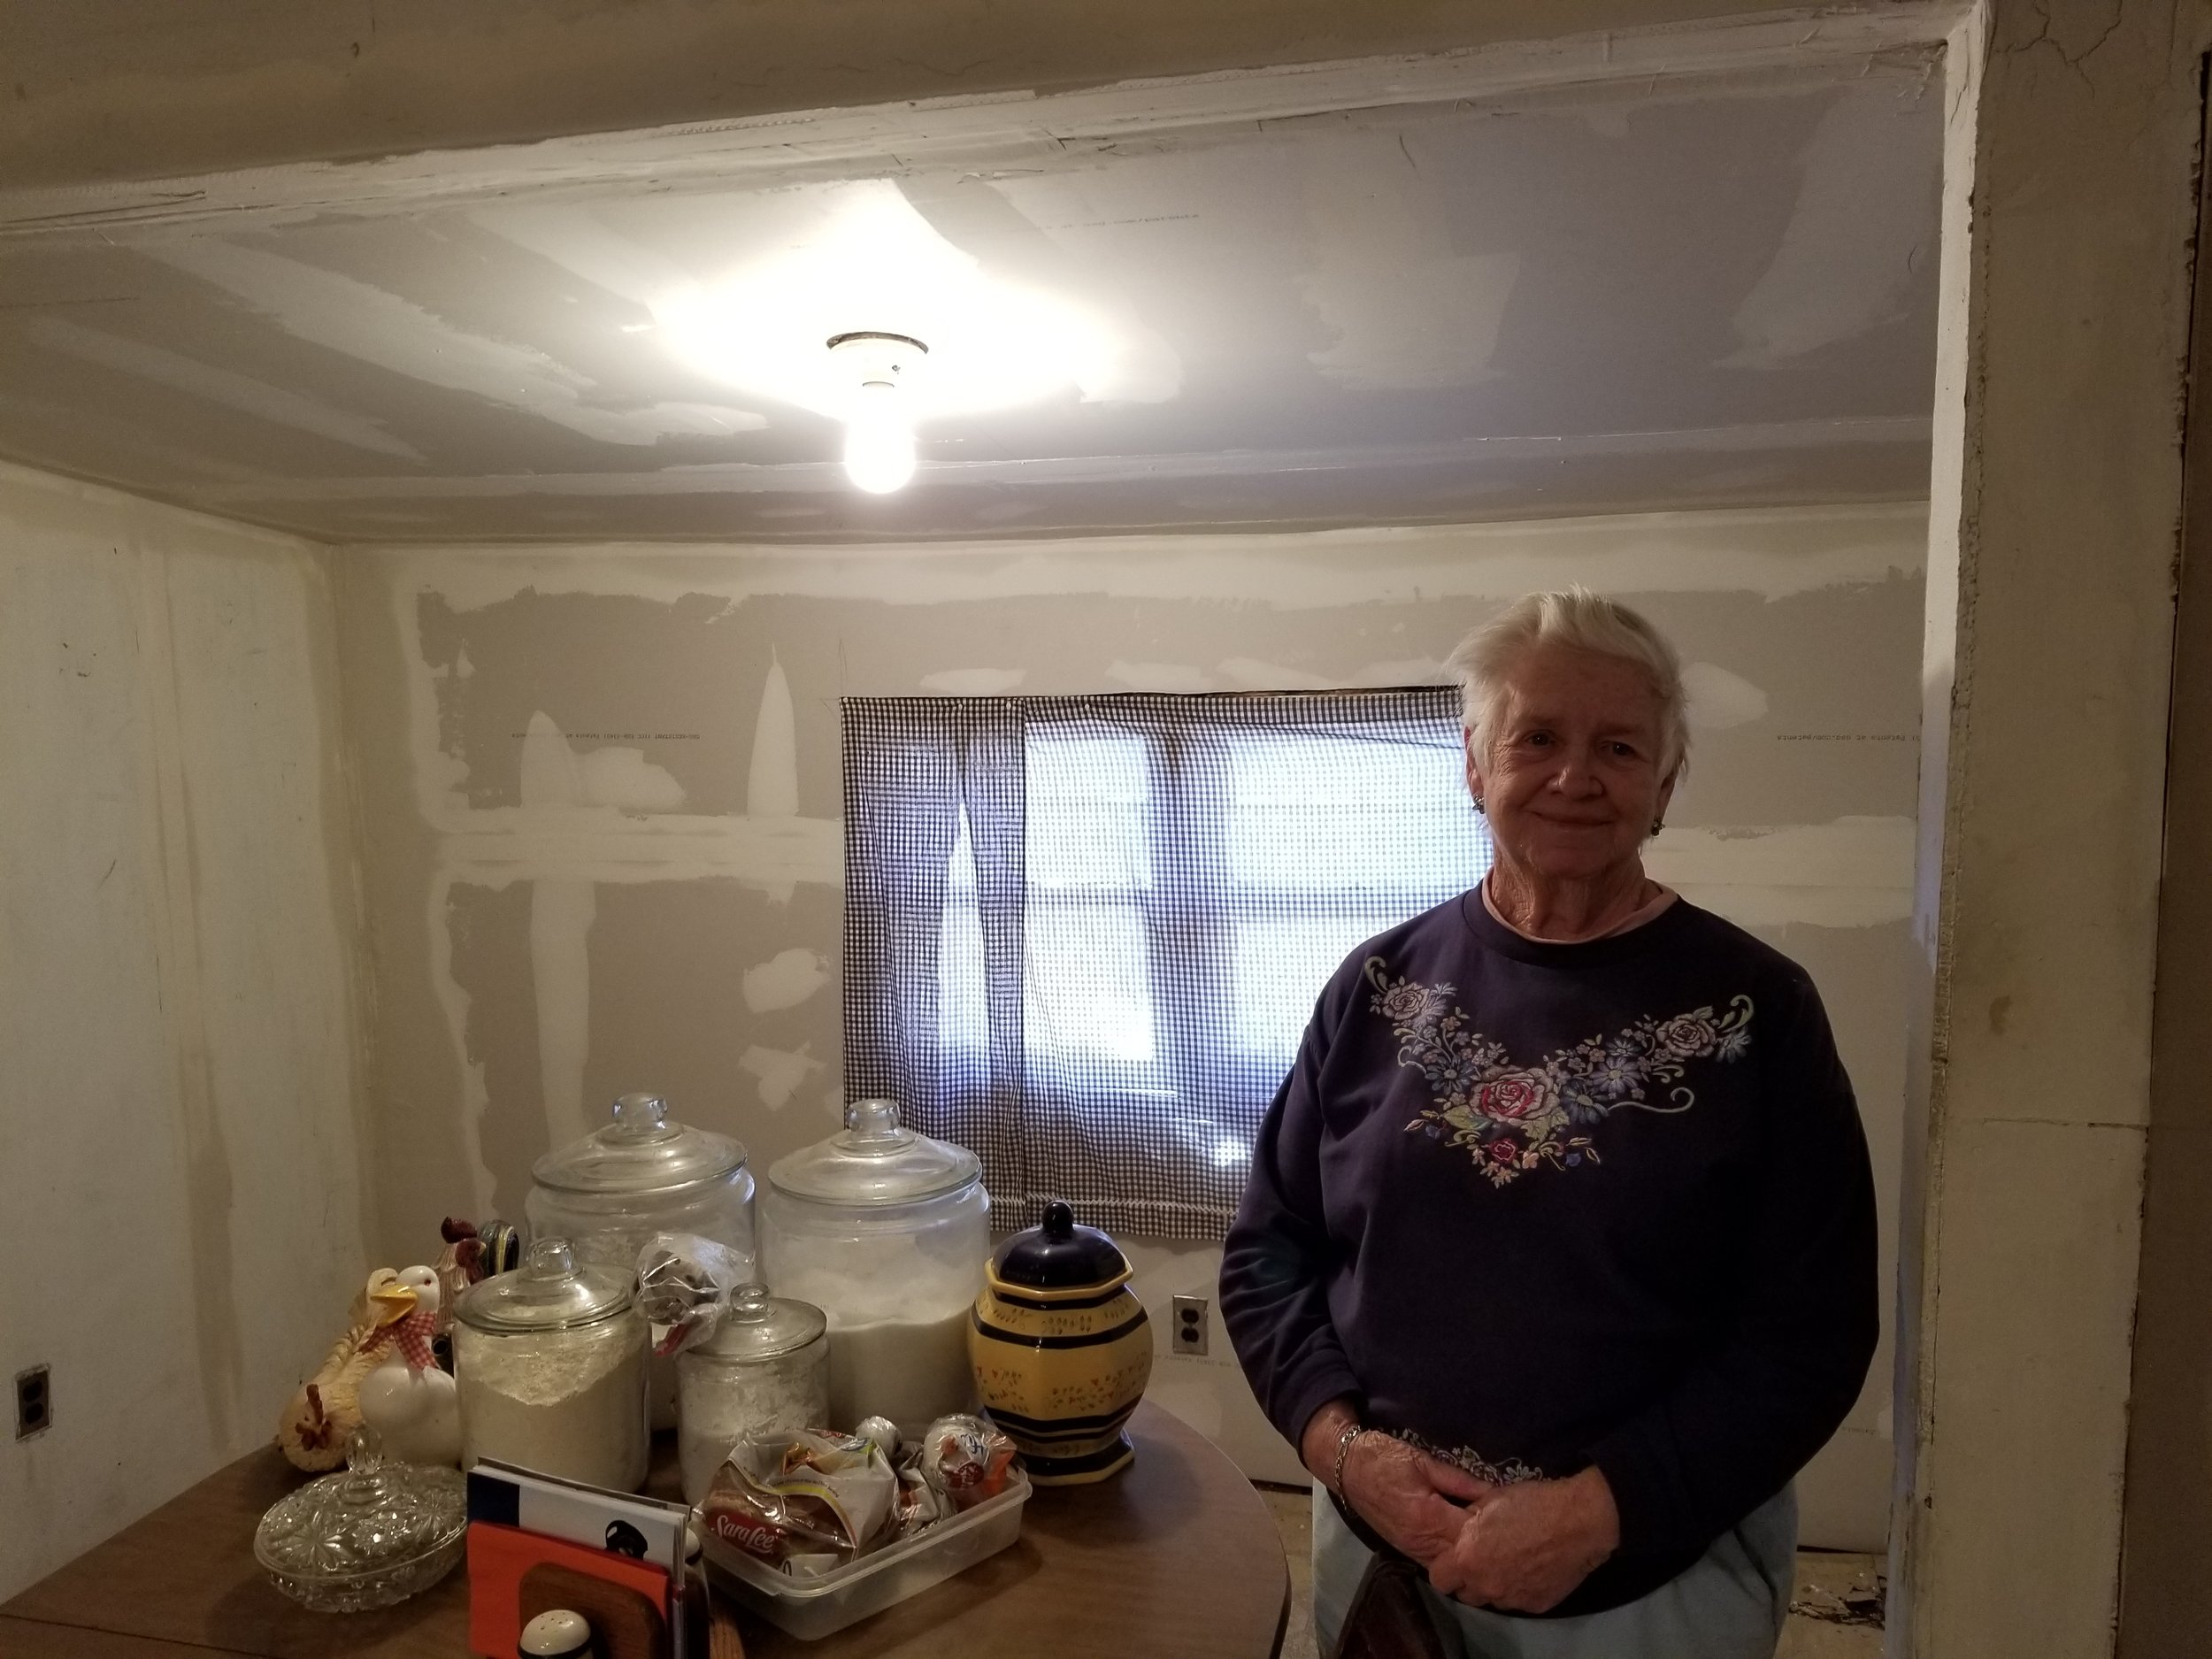 Marie, a widower in her eighties, had a roof leak that was fixed and the drywall inside the house was also repaired.